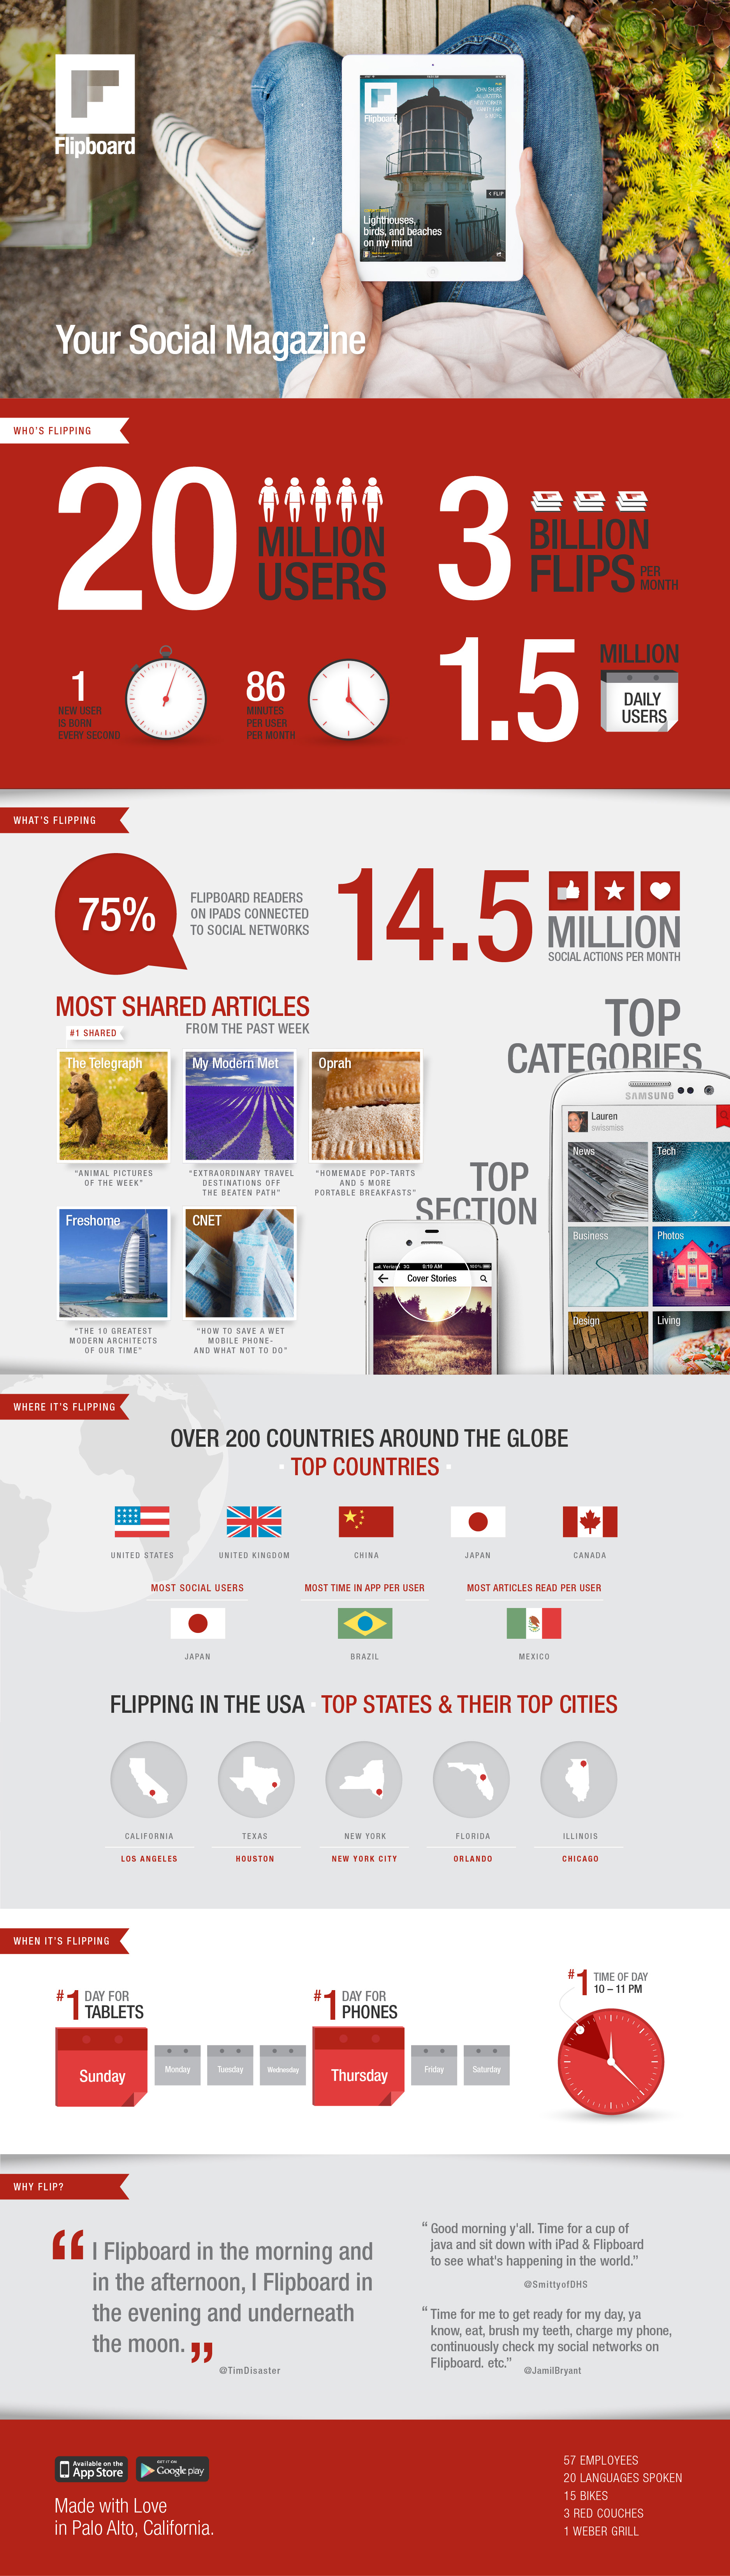 flipboard-quadruples-user-base-to-20-million-in-8-months_50636bcfaca95